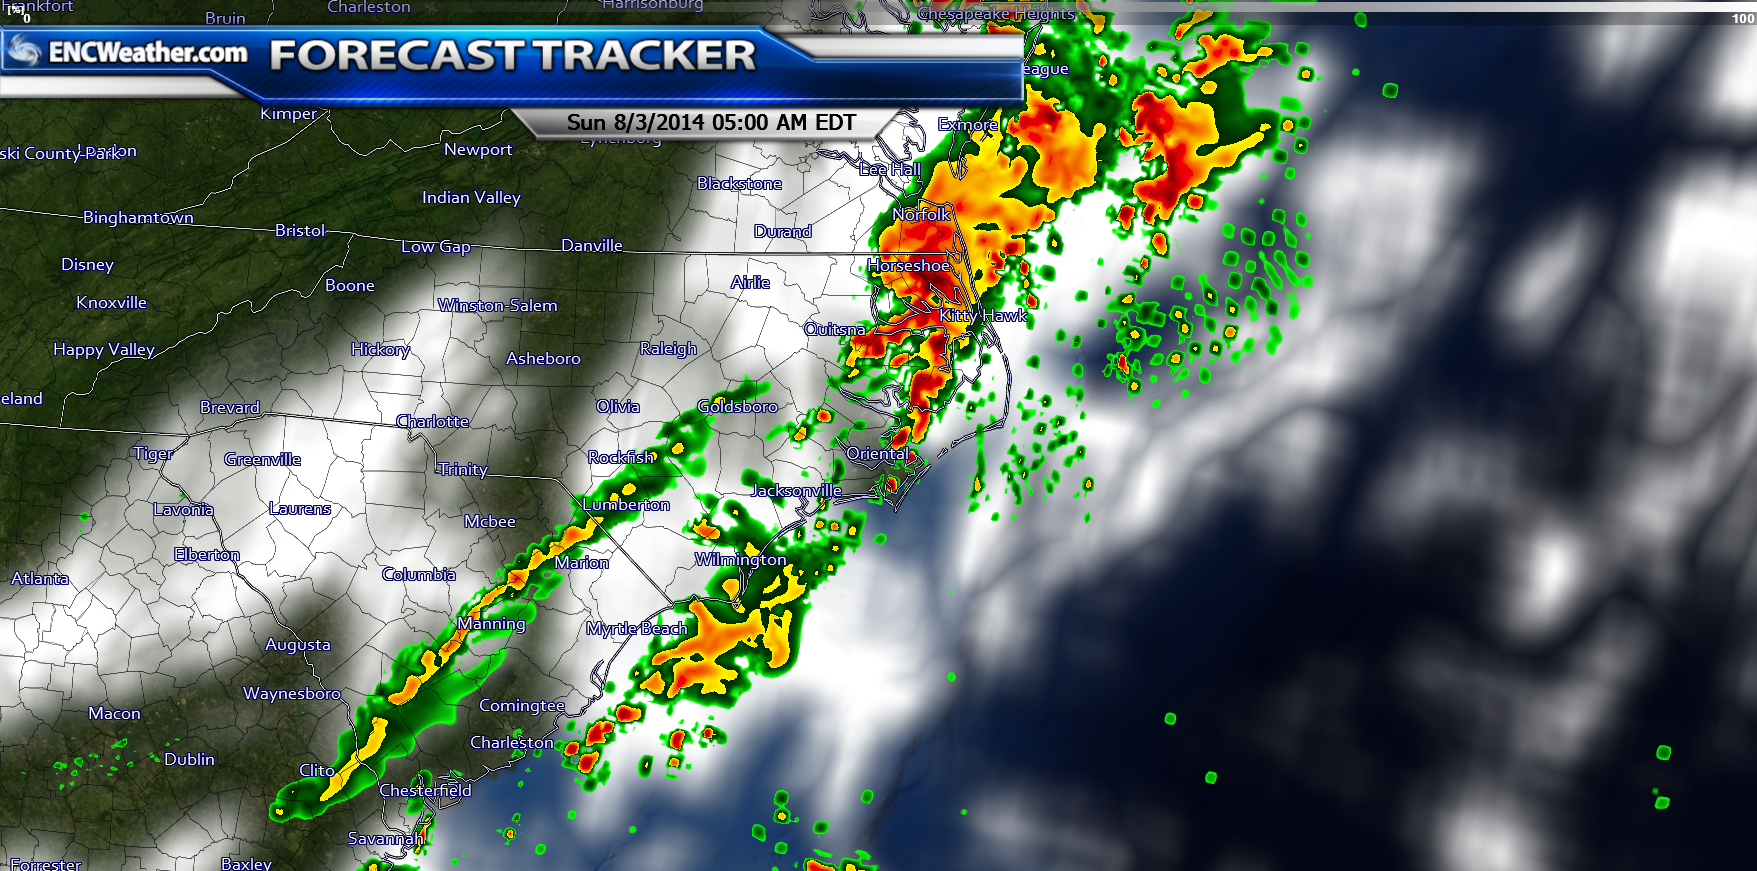 The HRRR forecast model shows some early morning showers across ENC. The rain will continue into the day.